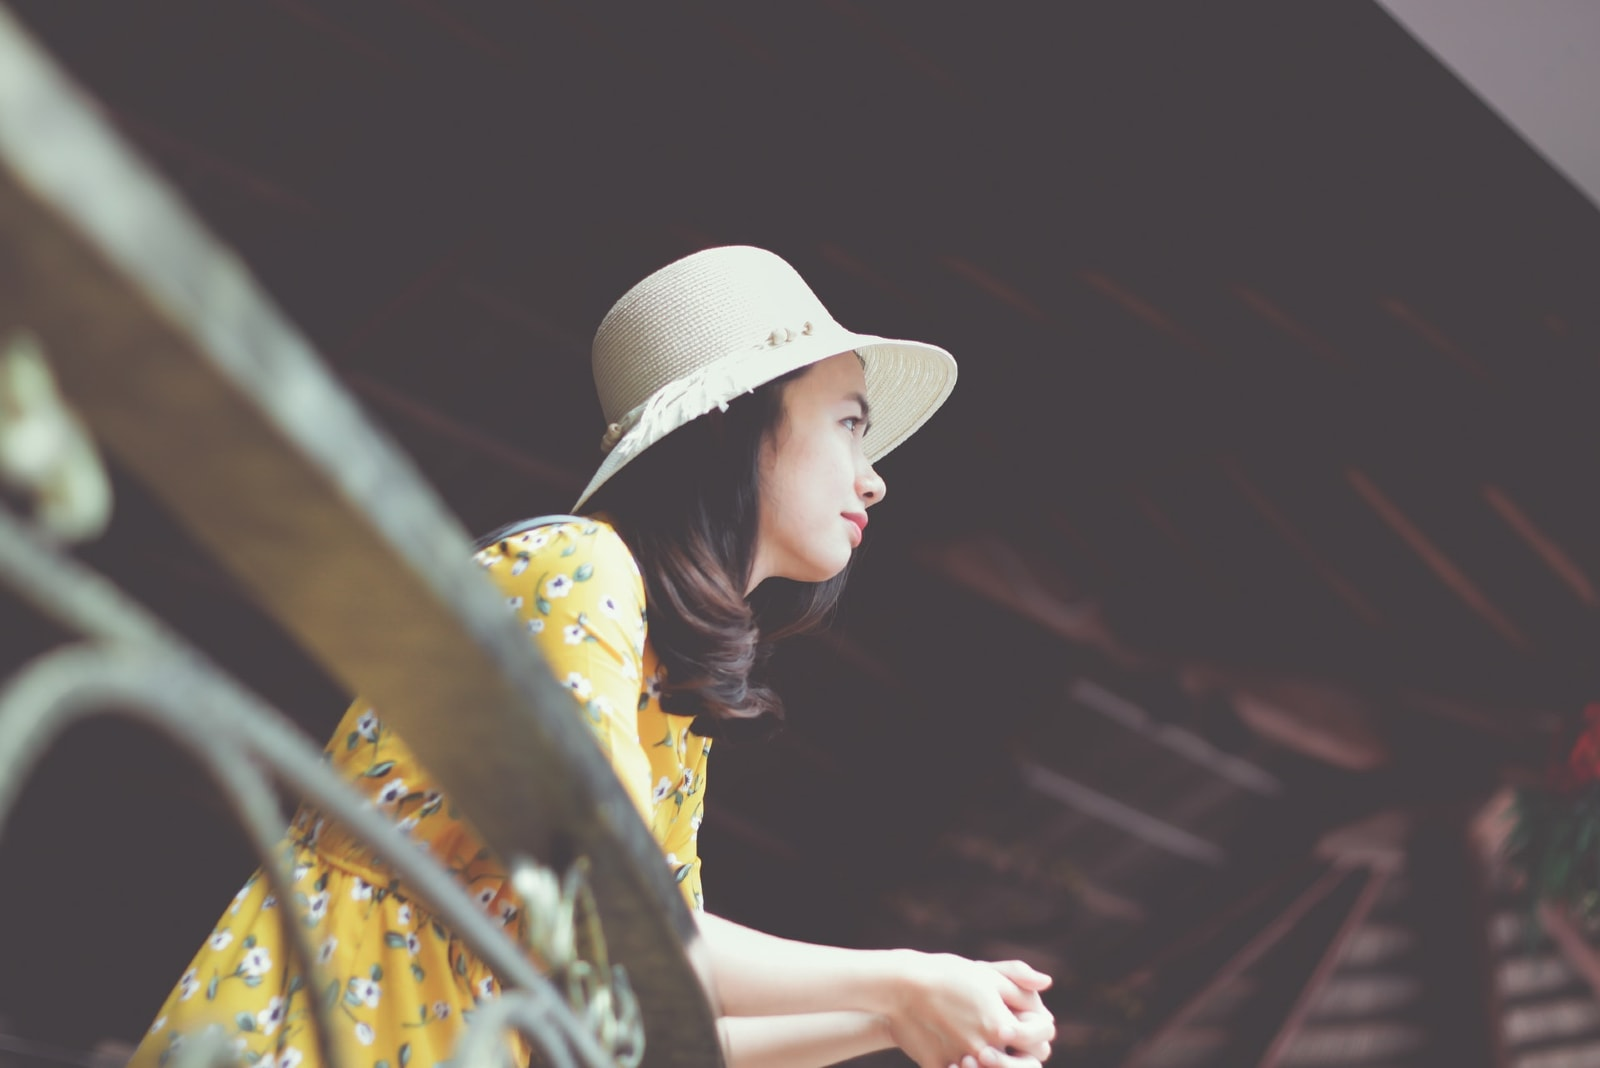 woman with hat leaning on metal fence